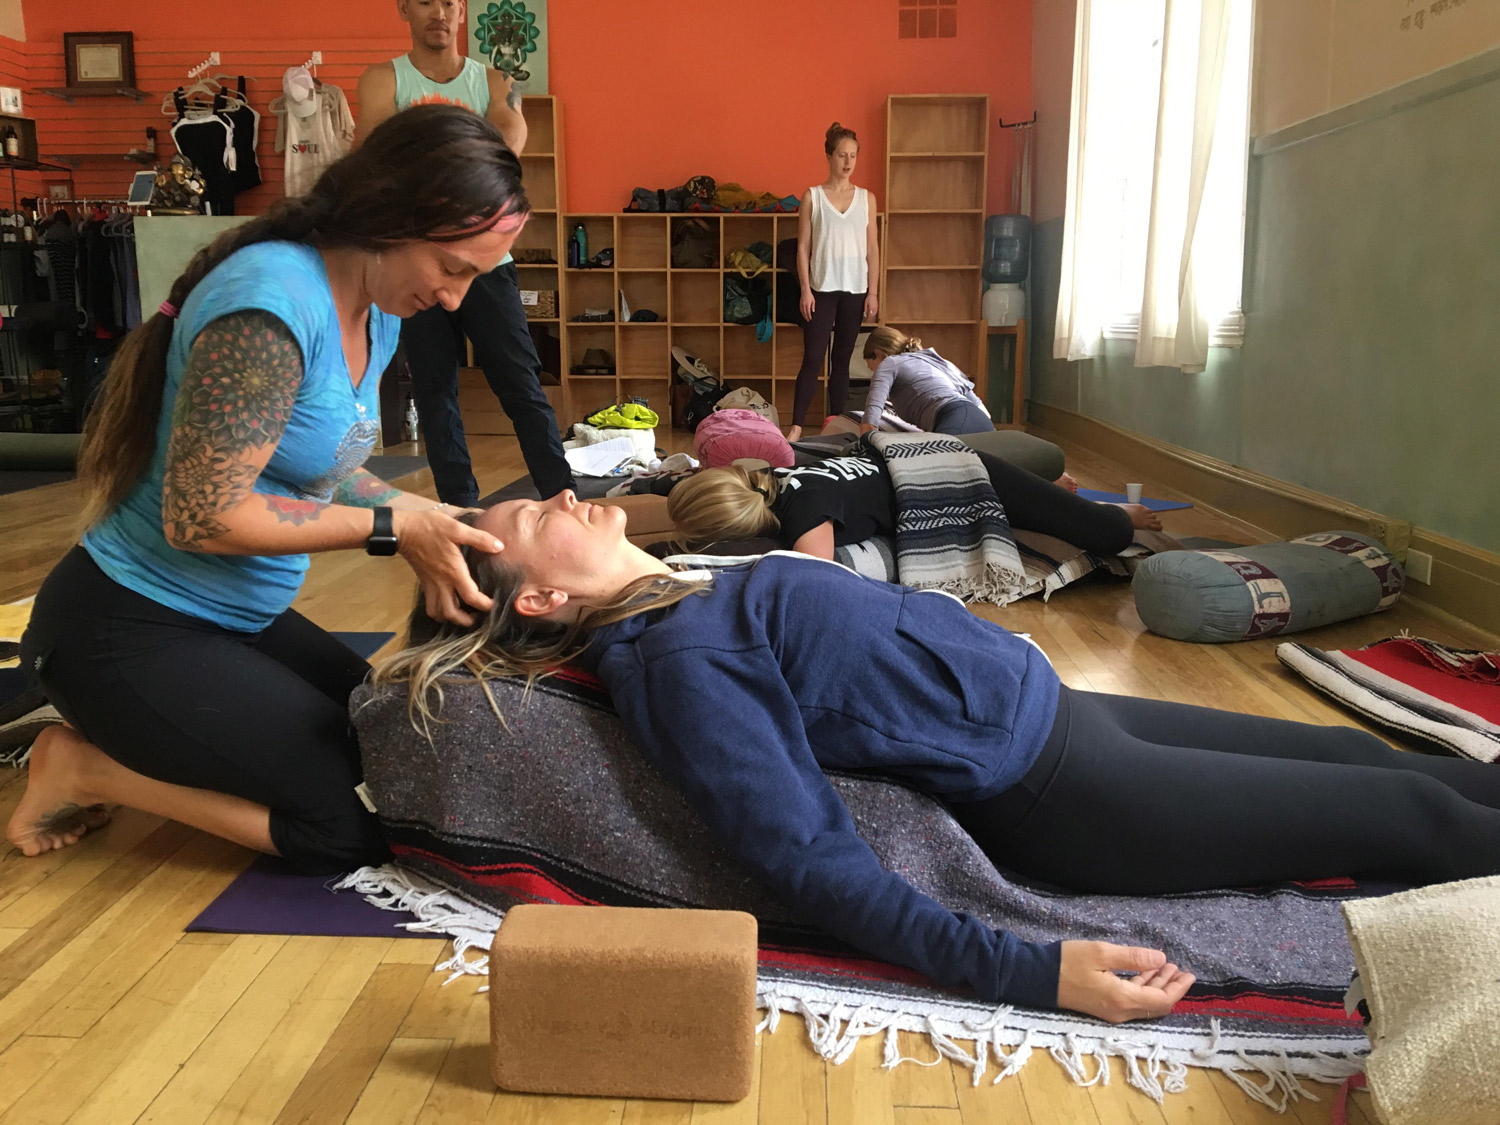 kali-durga-yoga-telluride-yin-yoga-teacher-training.jpg